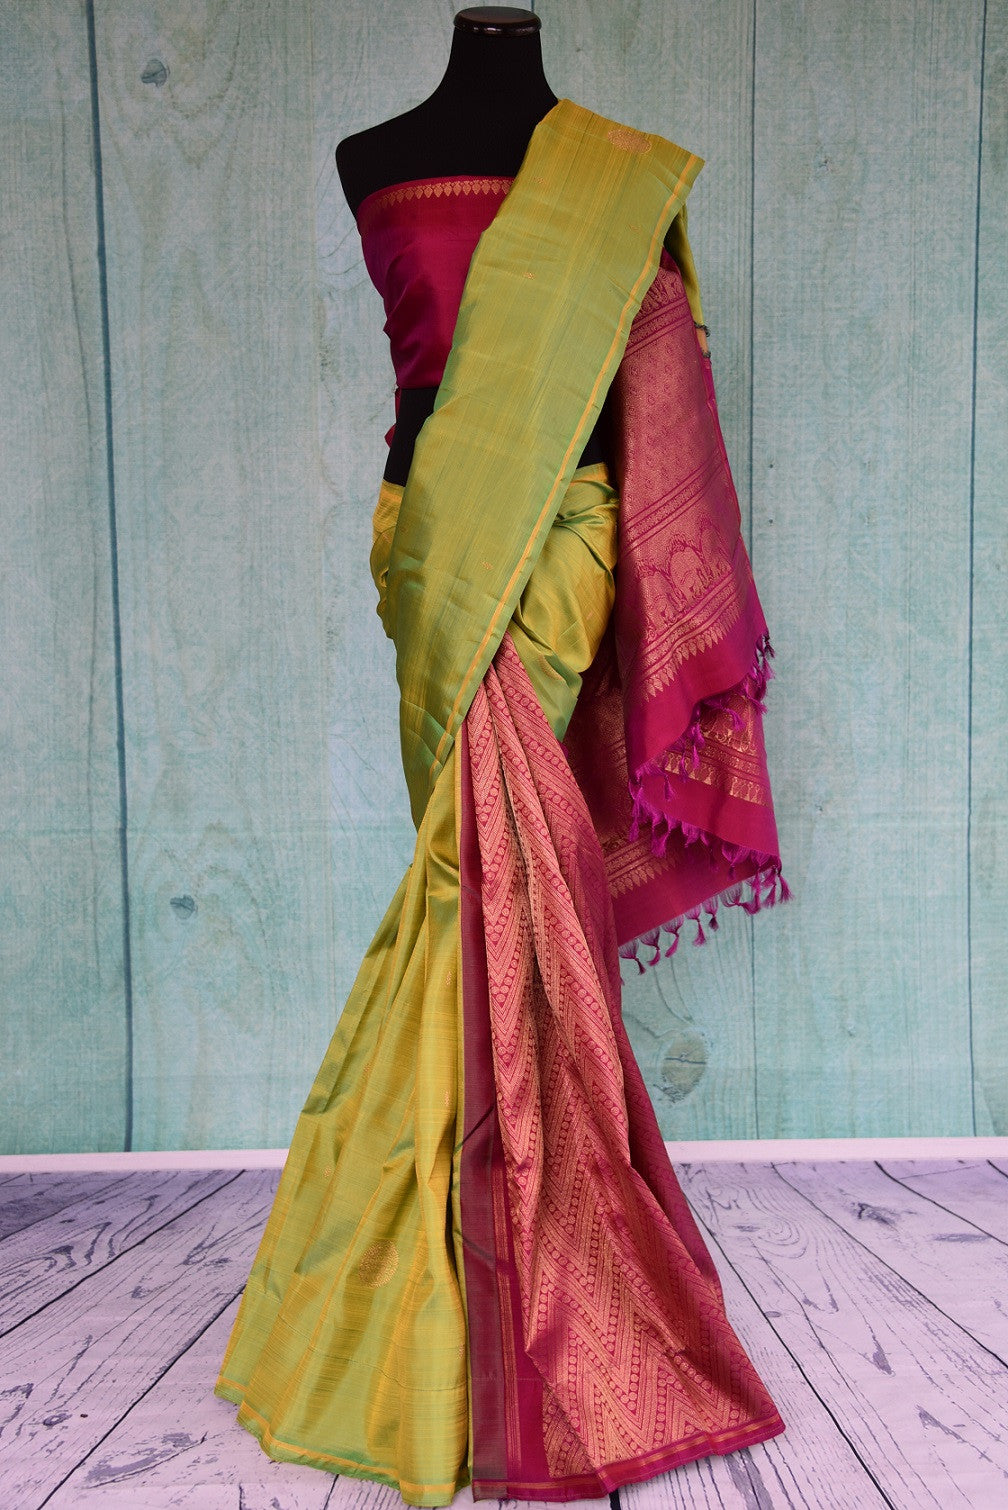 90D412 South Indian kanjivaram saree that will be a versatile addition to your Indian clothing collection. Buy this green and pink saree online in USA at our ethnic fashion store - Pure Elegance.